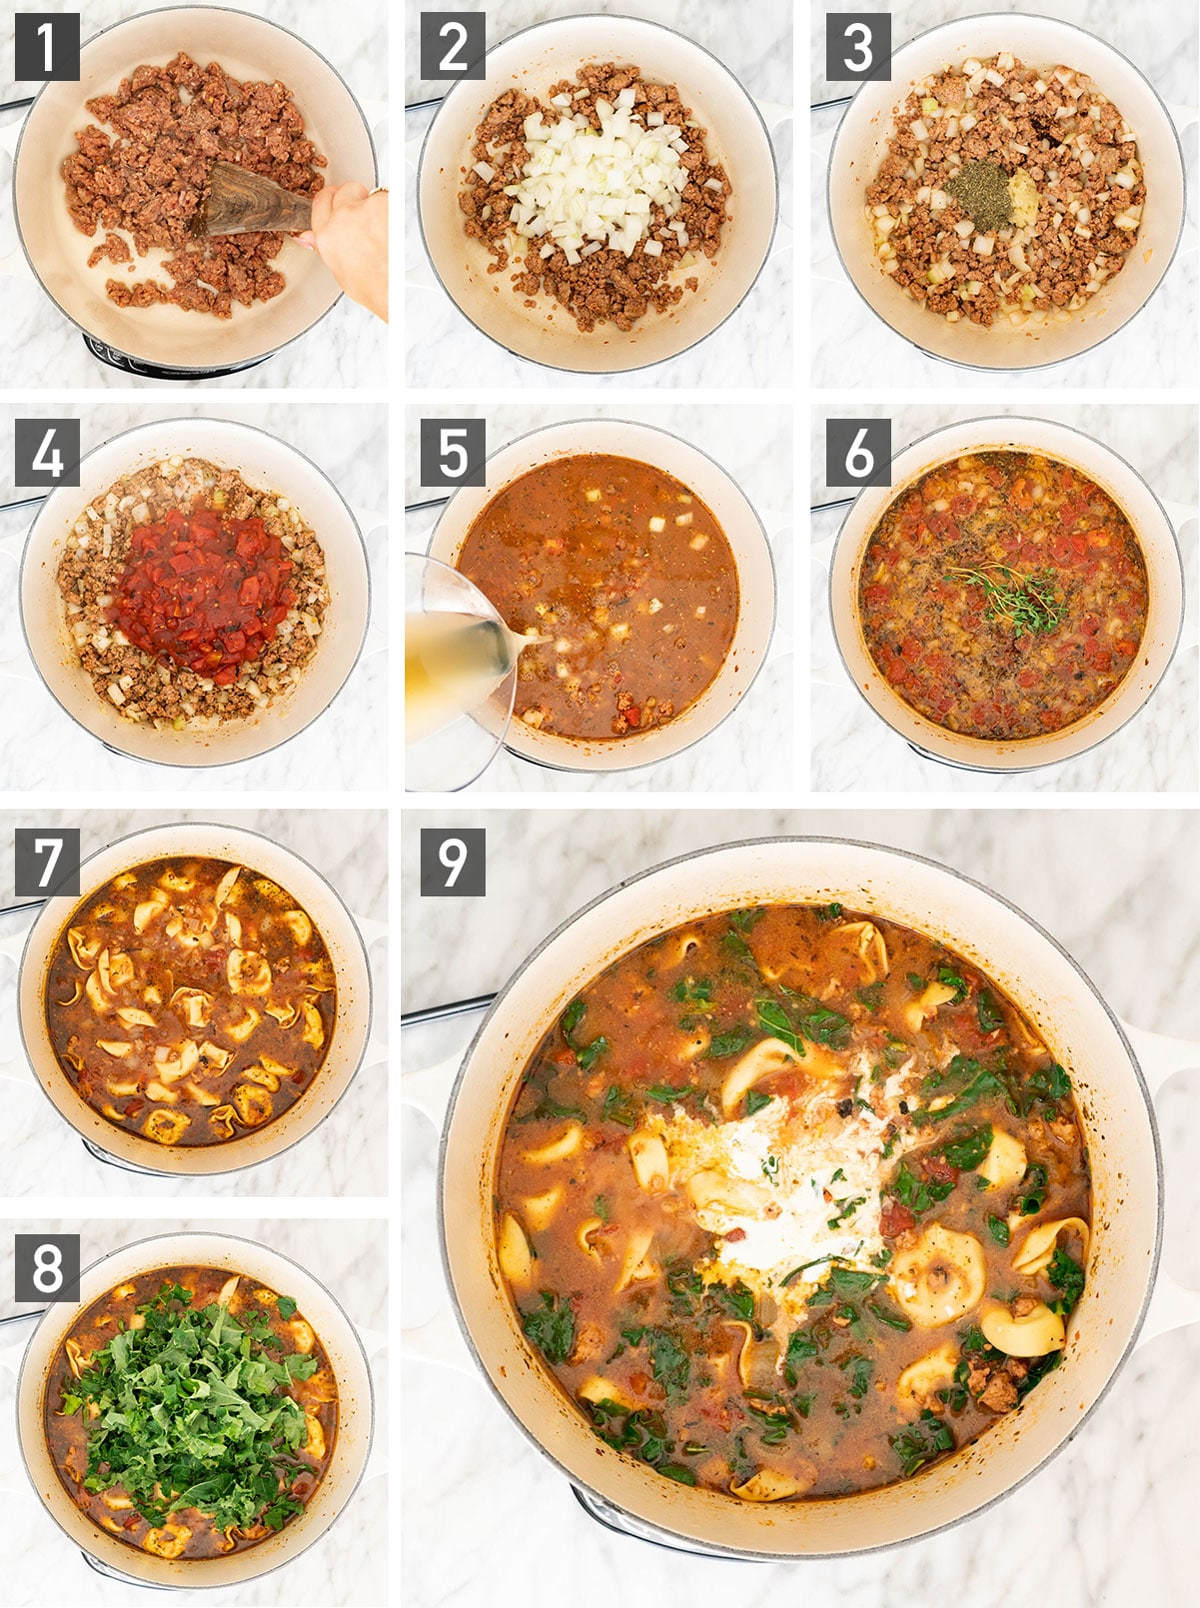 Step-by-step instructions for making creamy tortellini soup with sausage